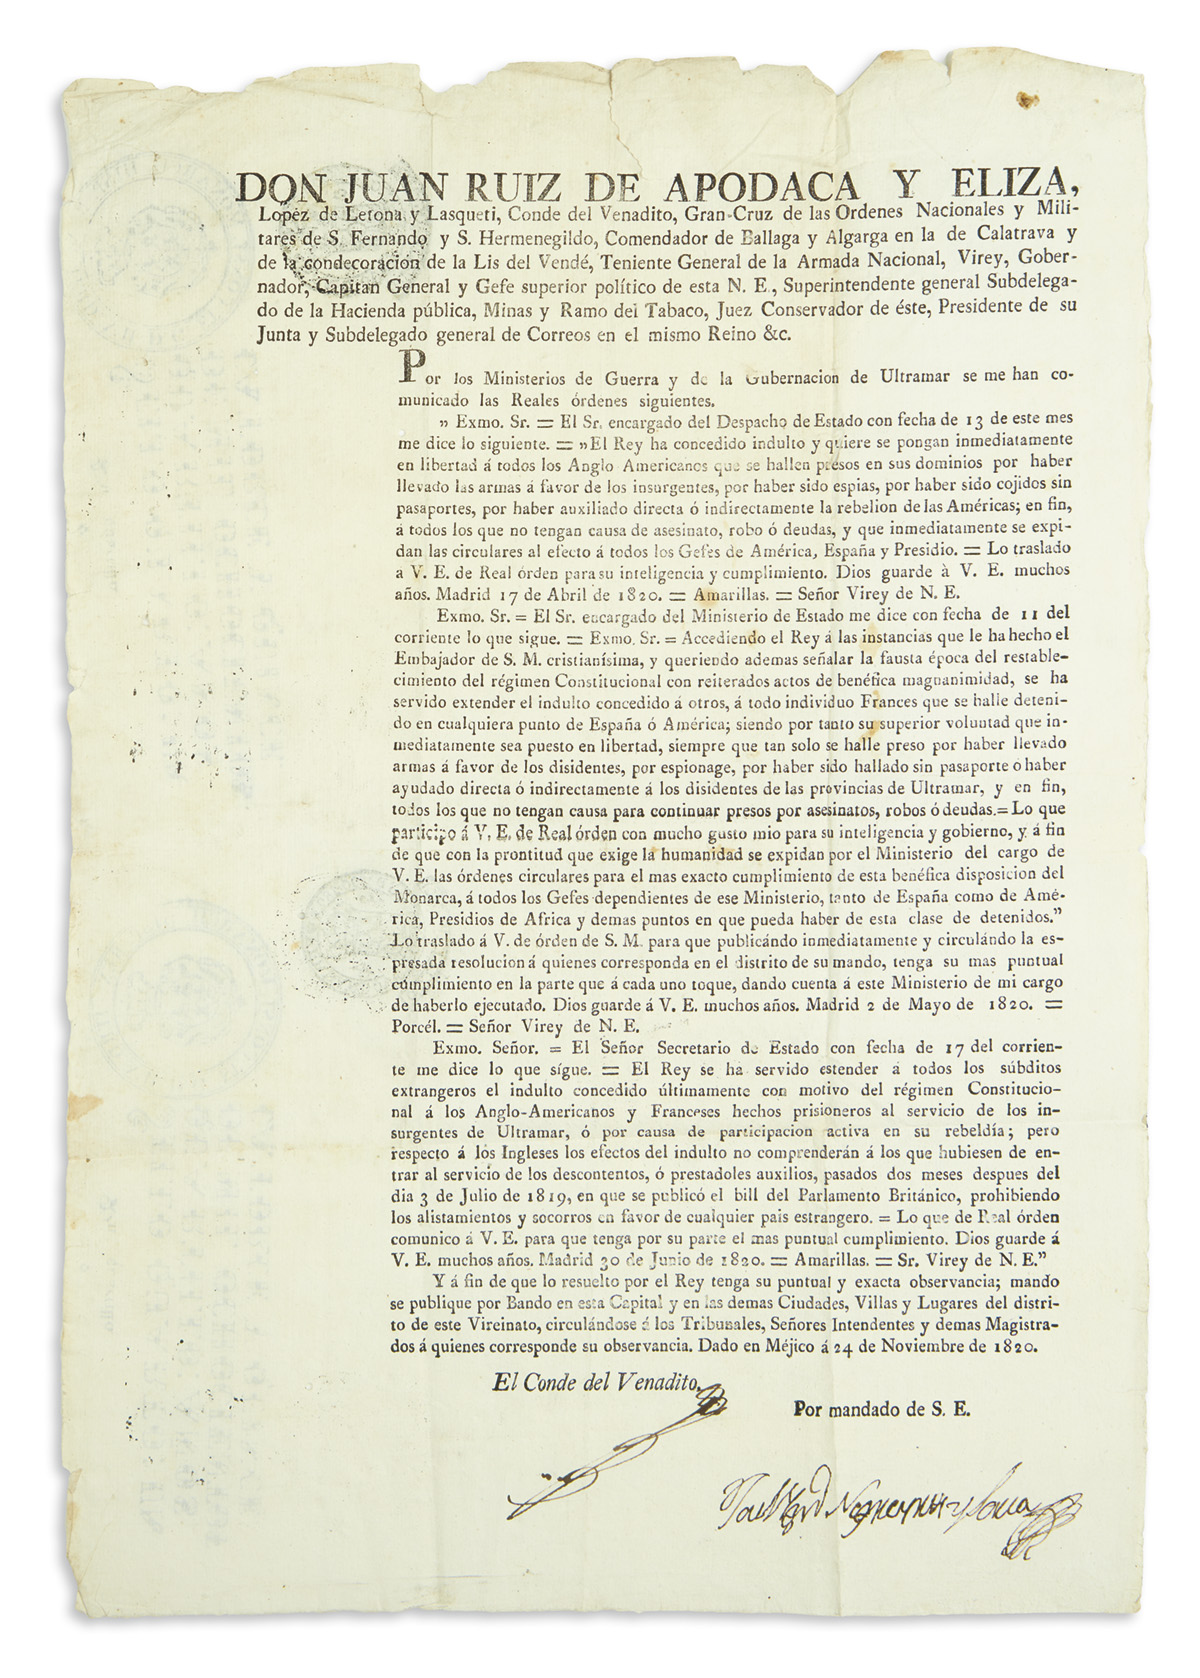 (MEXICAN IMPRINT--1820.) Ruiz de Apodaca, Juan. Offer of amnesty to American citizens who had fought for Mexican independence.